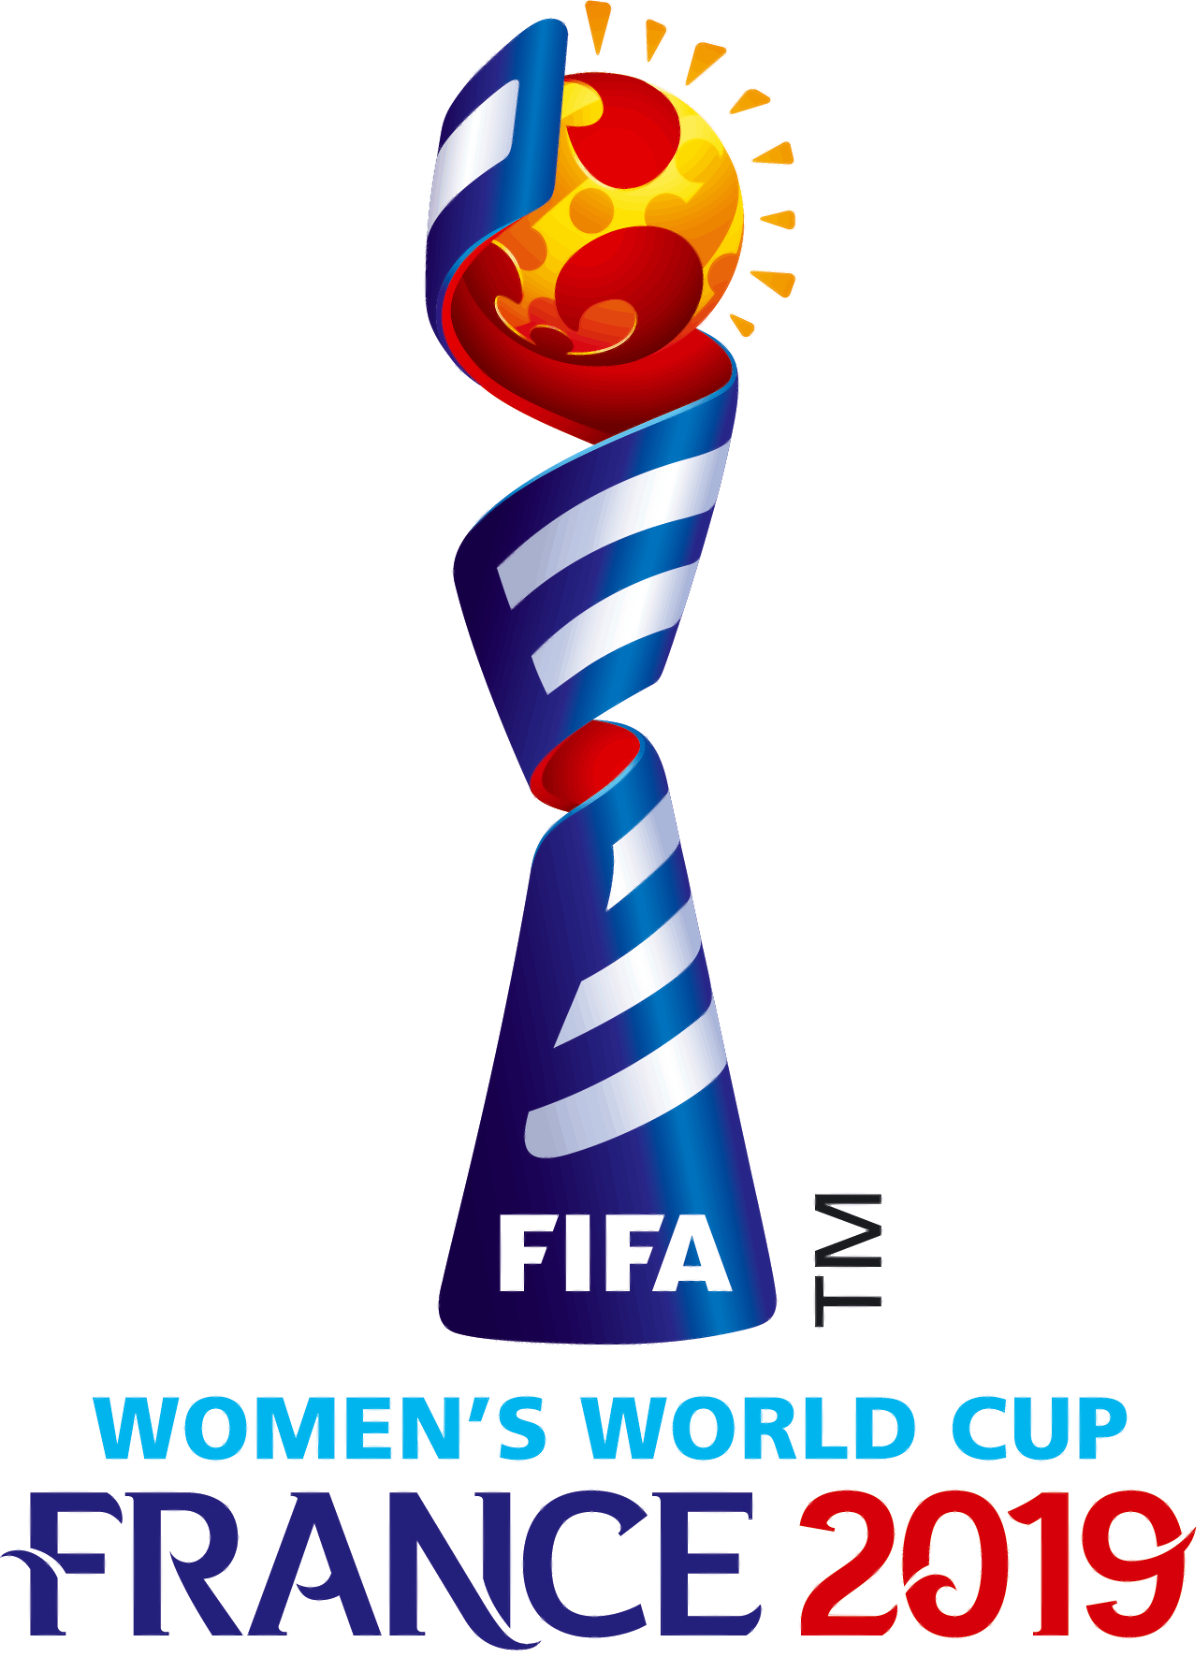 16e5ab675 We are around 6 weeks away from The Women s World Cup. Thought we could  give it it s own thread and keep track here. It does not get anywhere near  as much ...